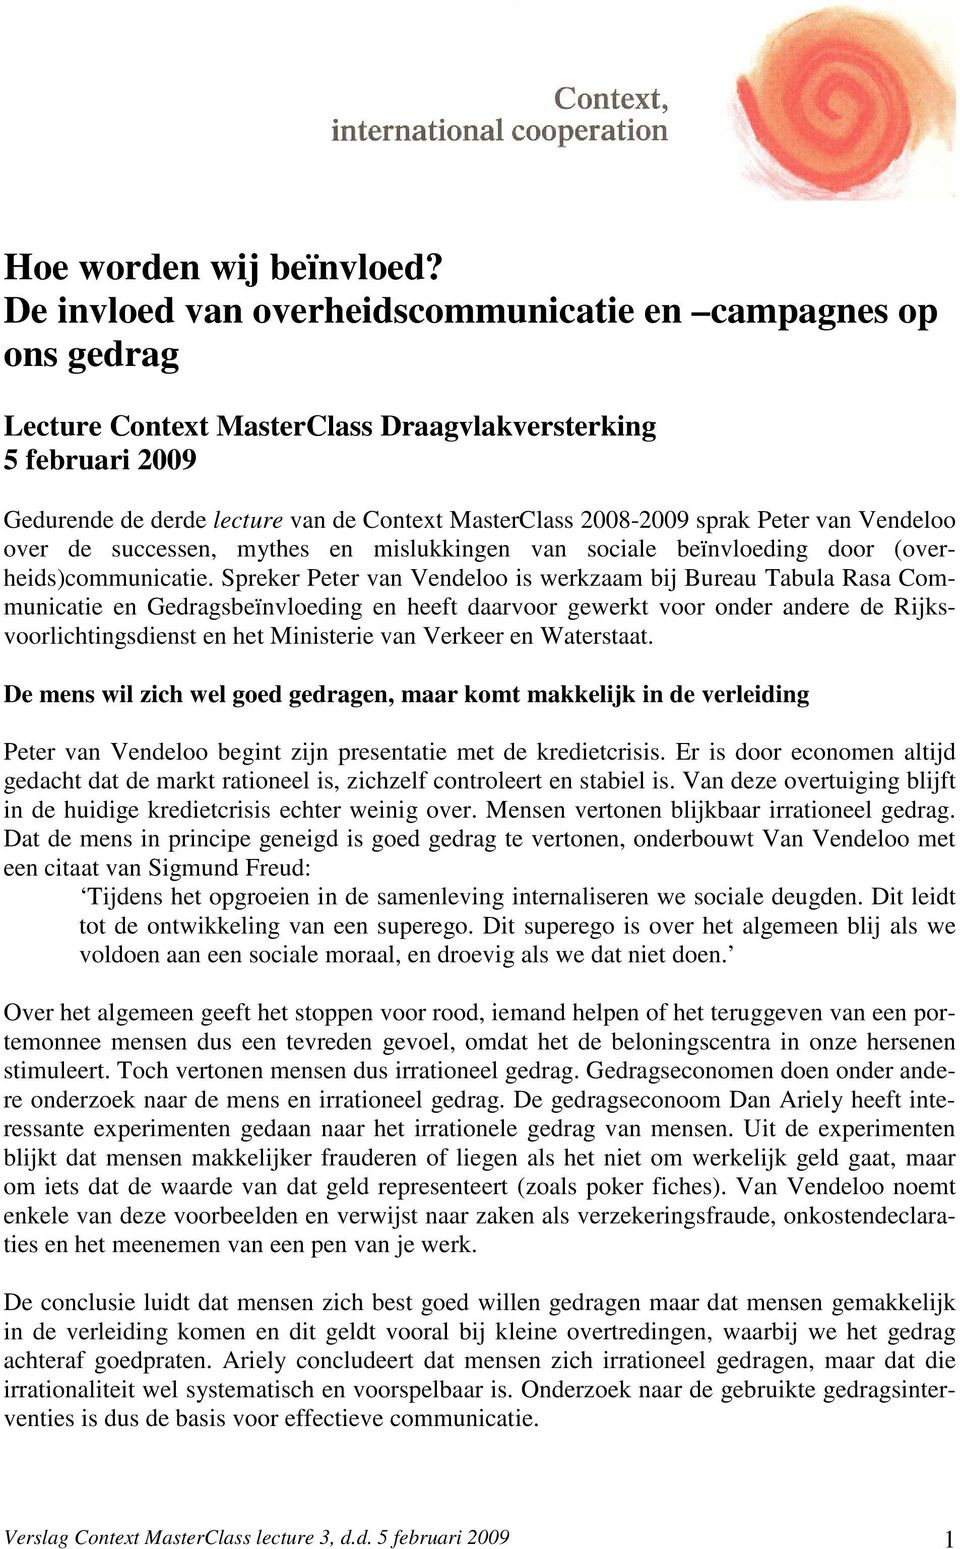 Peter van Vendeloo over de successen, mythes en mislukkingen van sociale beïnvloeding door (overheids)communicatie.